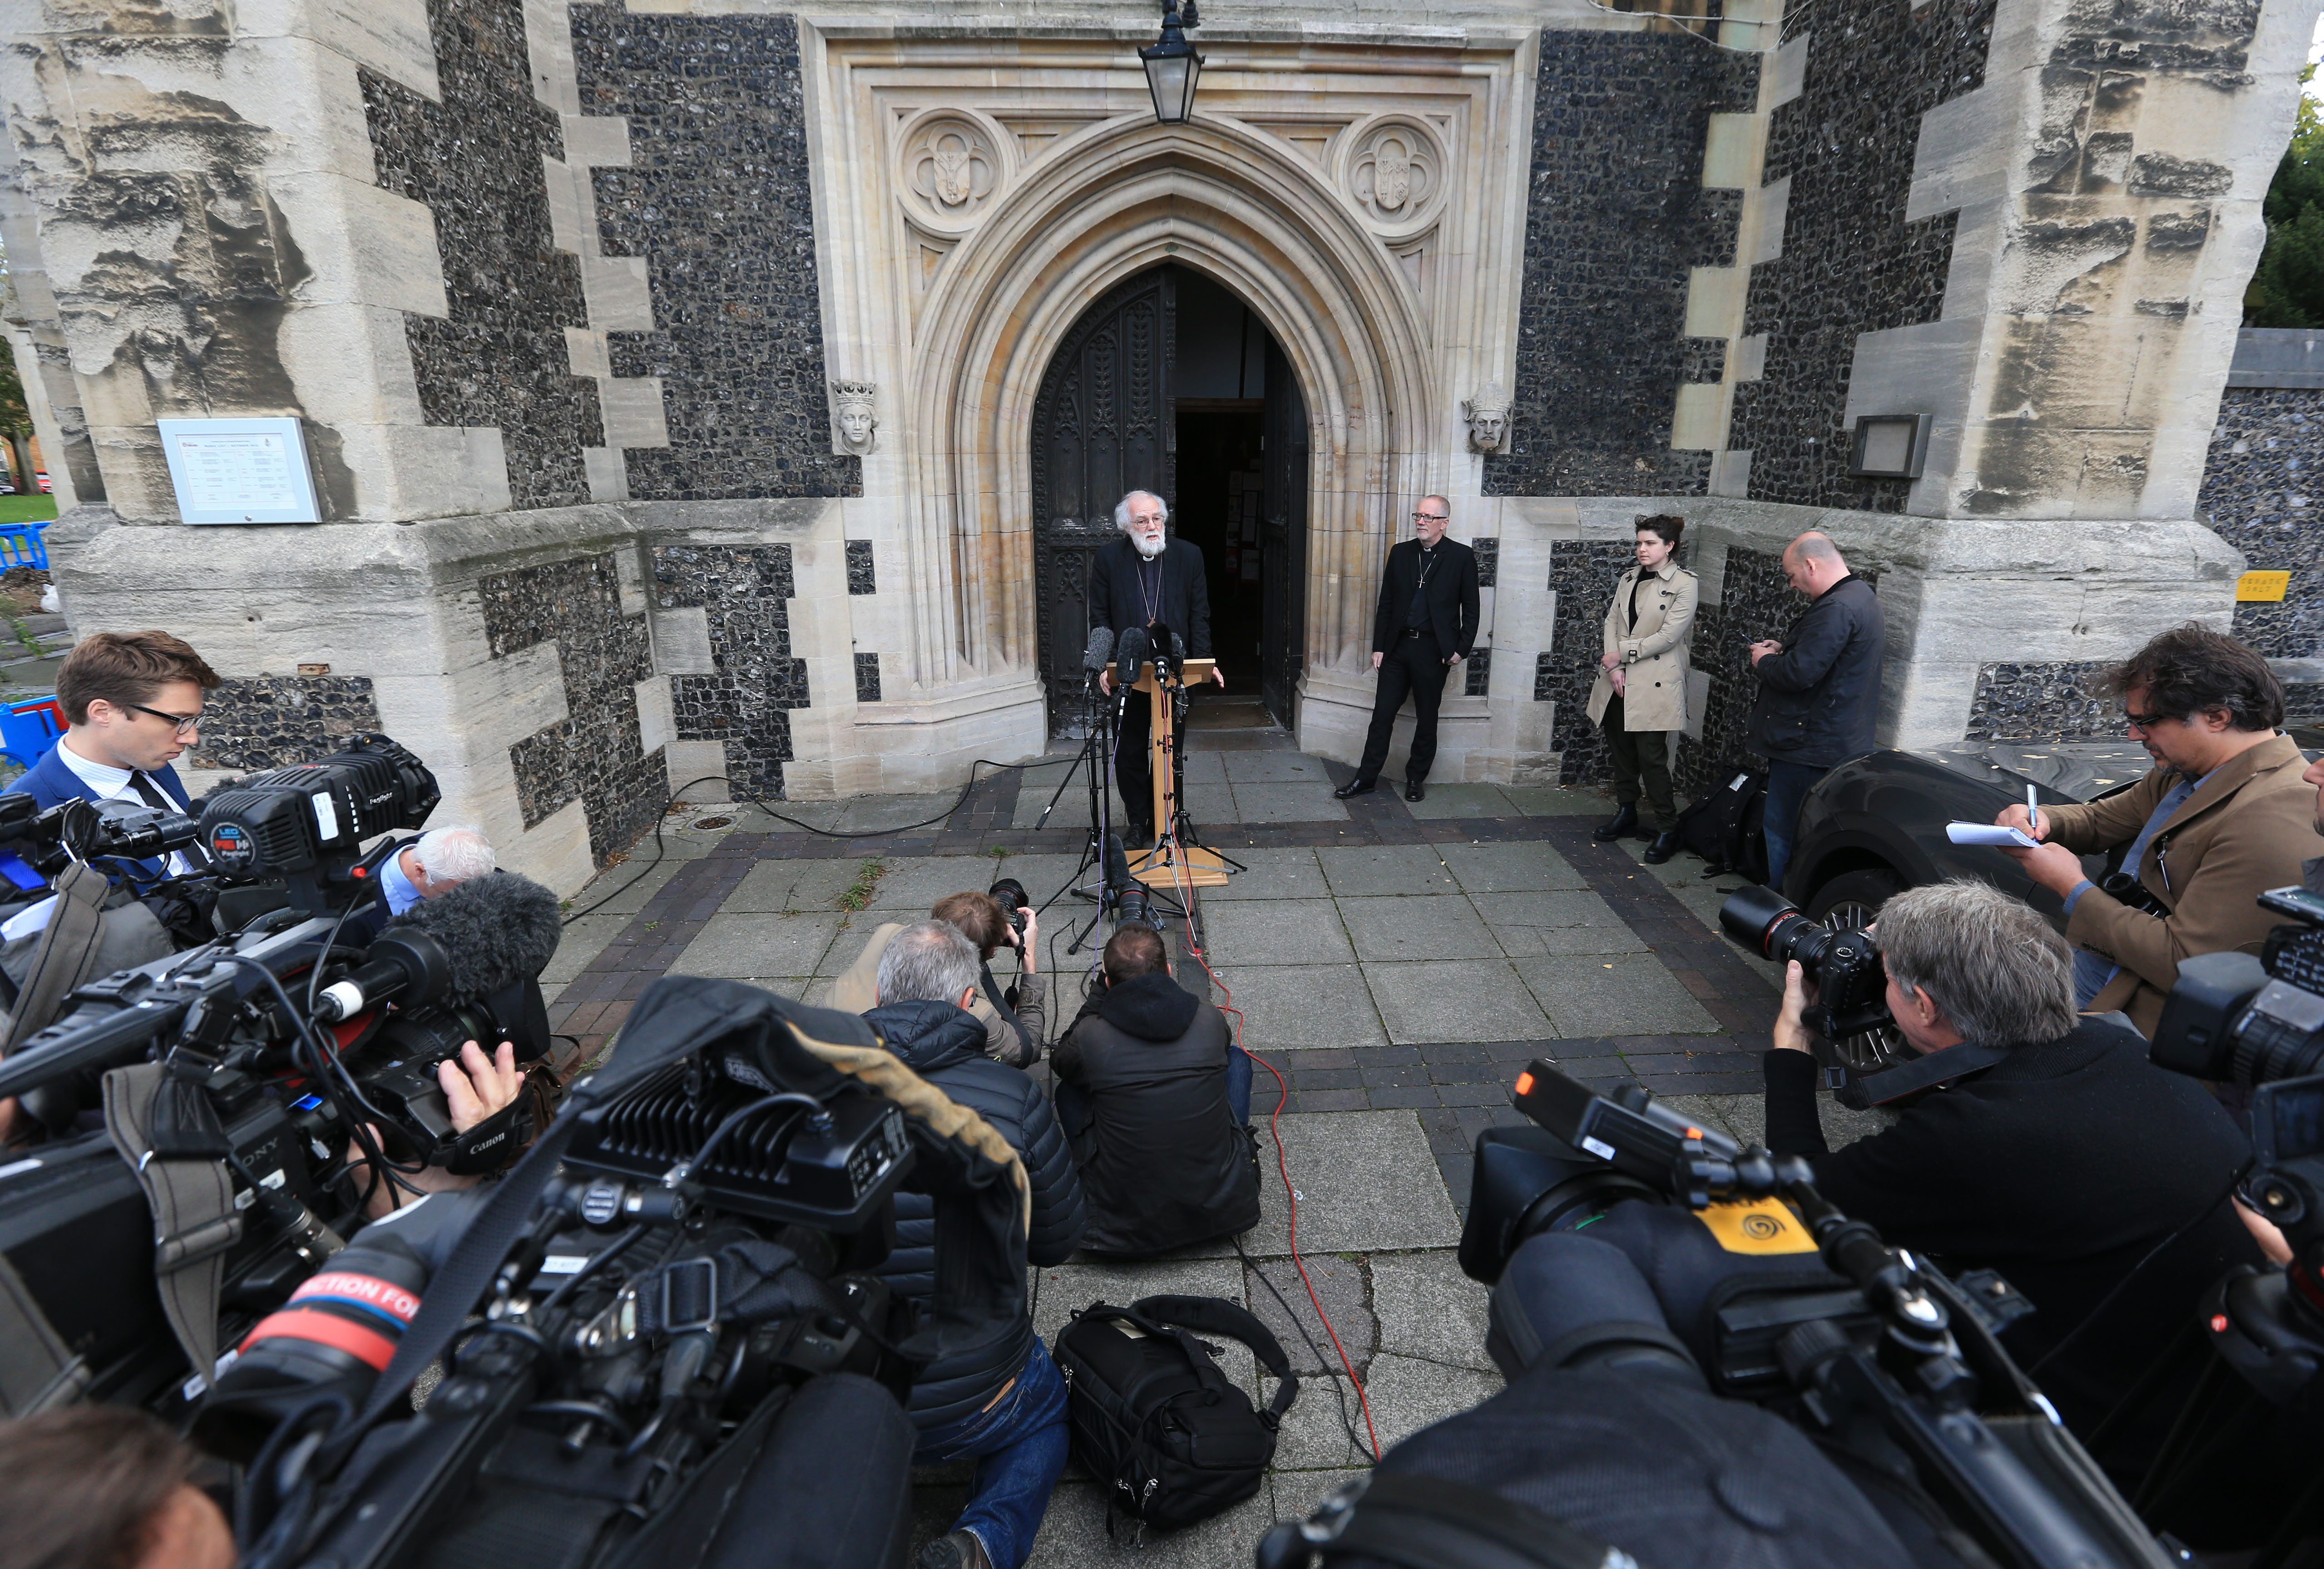 Former Archbishop of Canterbury Dr Rowan Williams speaks to reporters outside Croydon Minster, Croydon, as efforts to resettle migrant children from the Calais  Jungle  are stepped up. Picture date: Monday October 17, 2016.